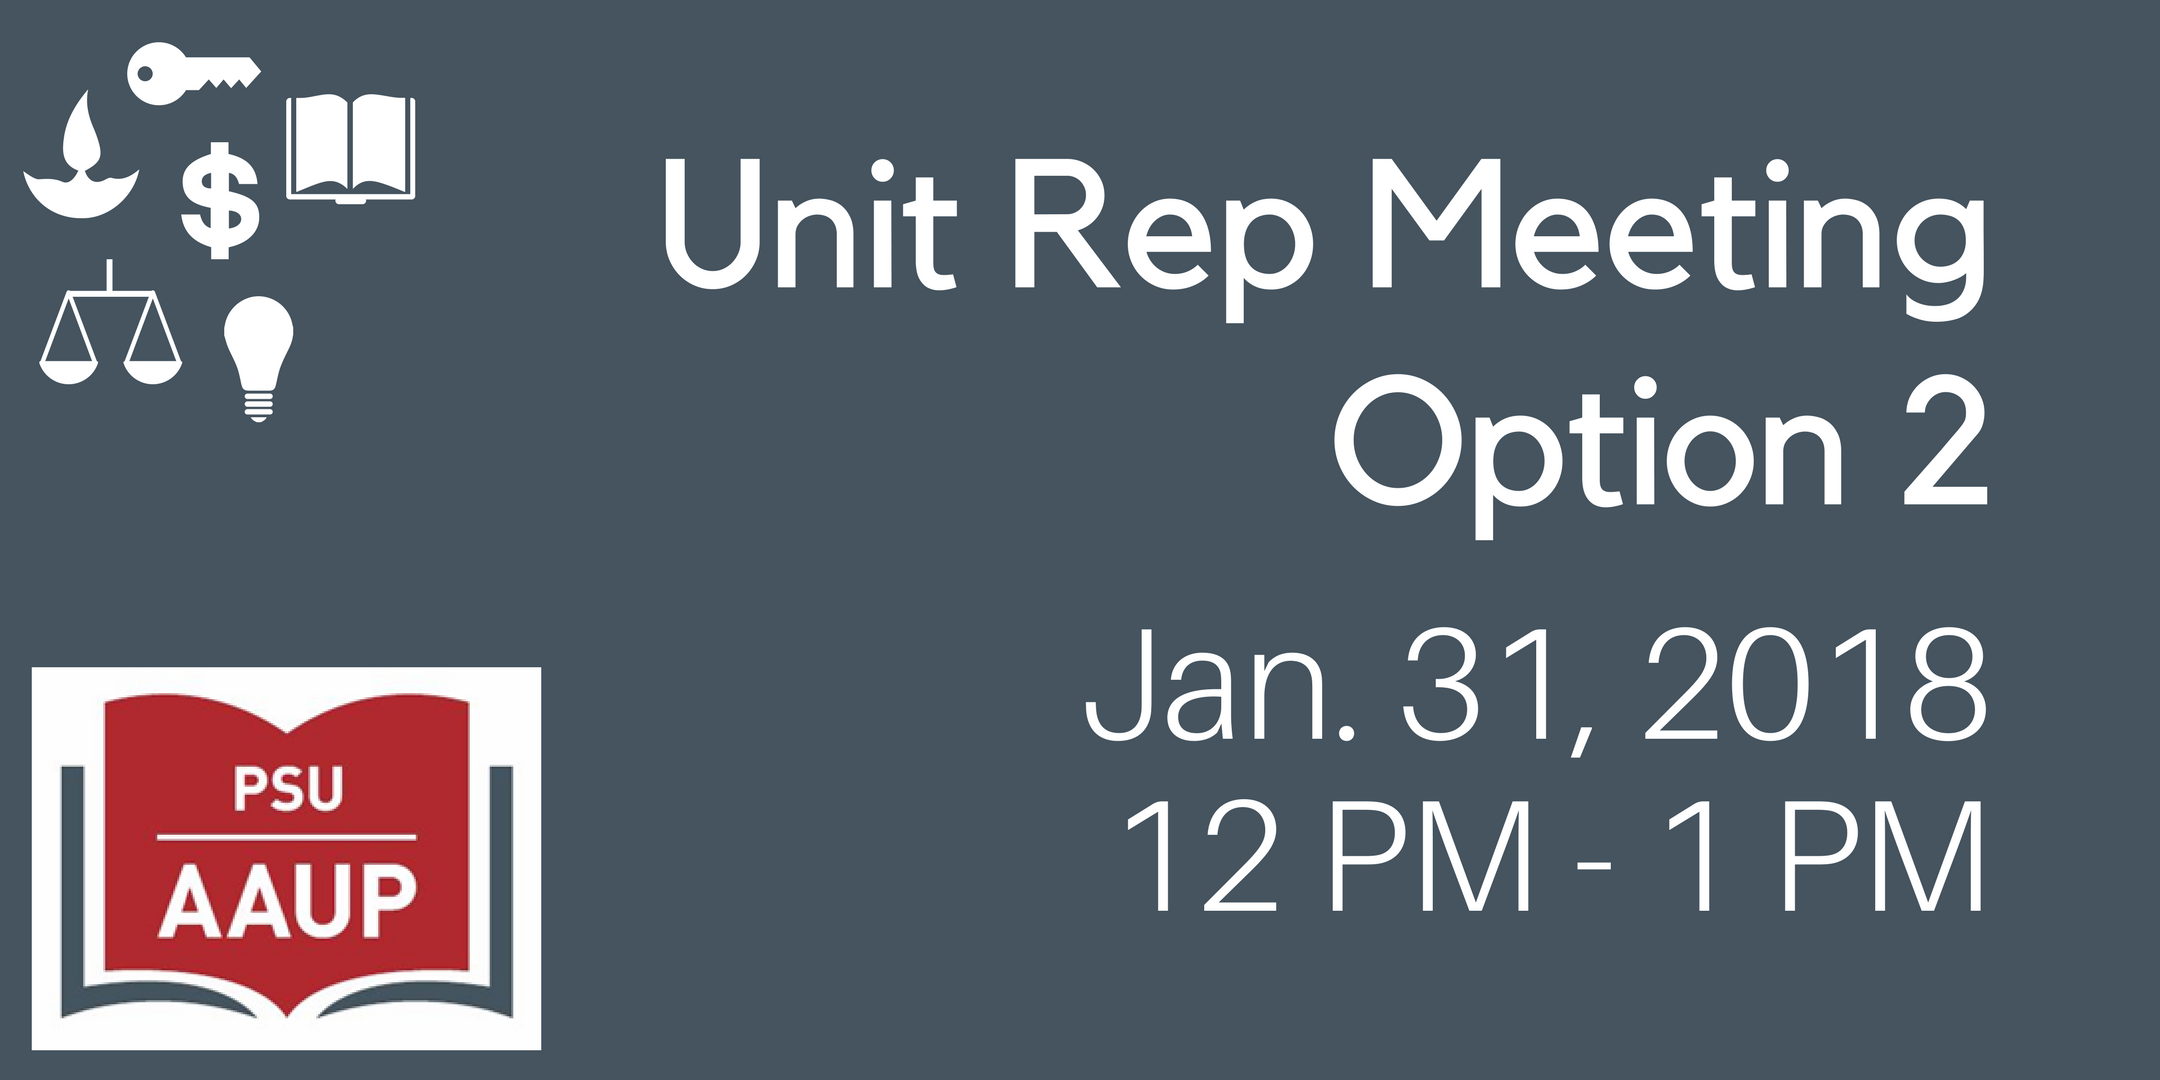 Unit Rep Meeting Option 2